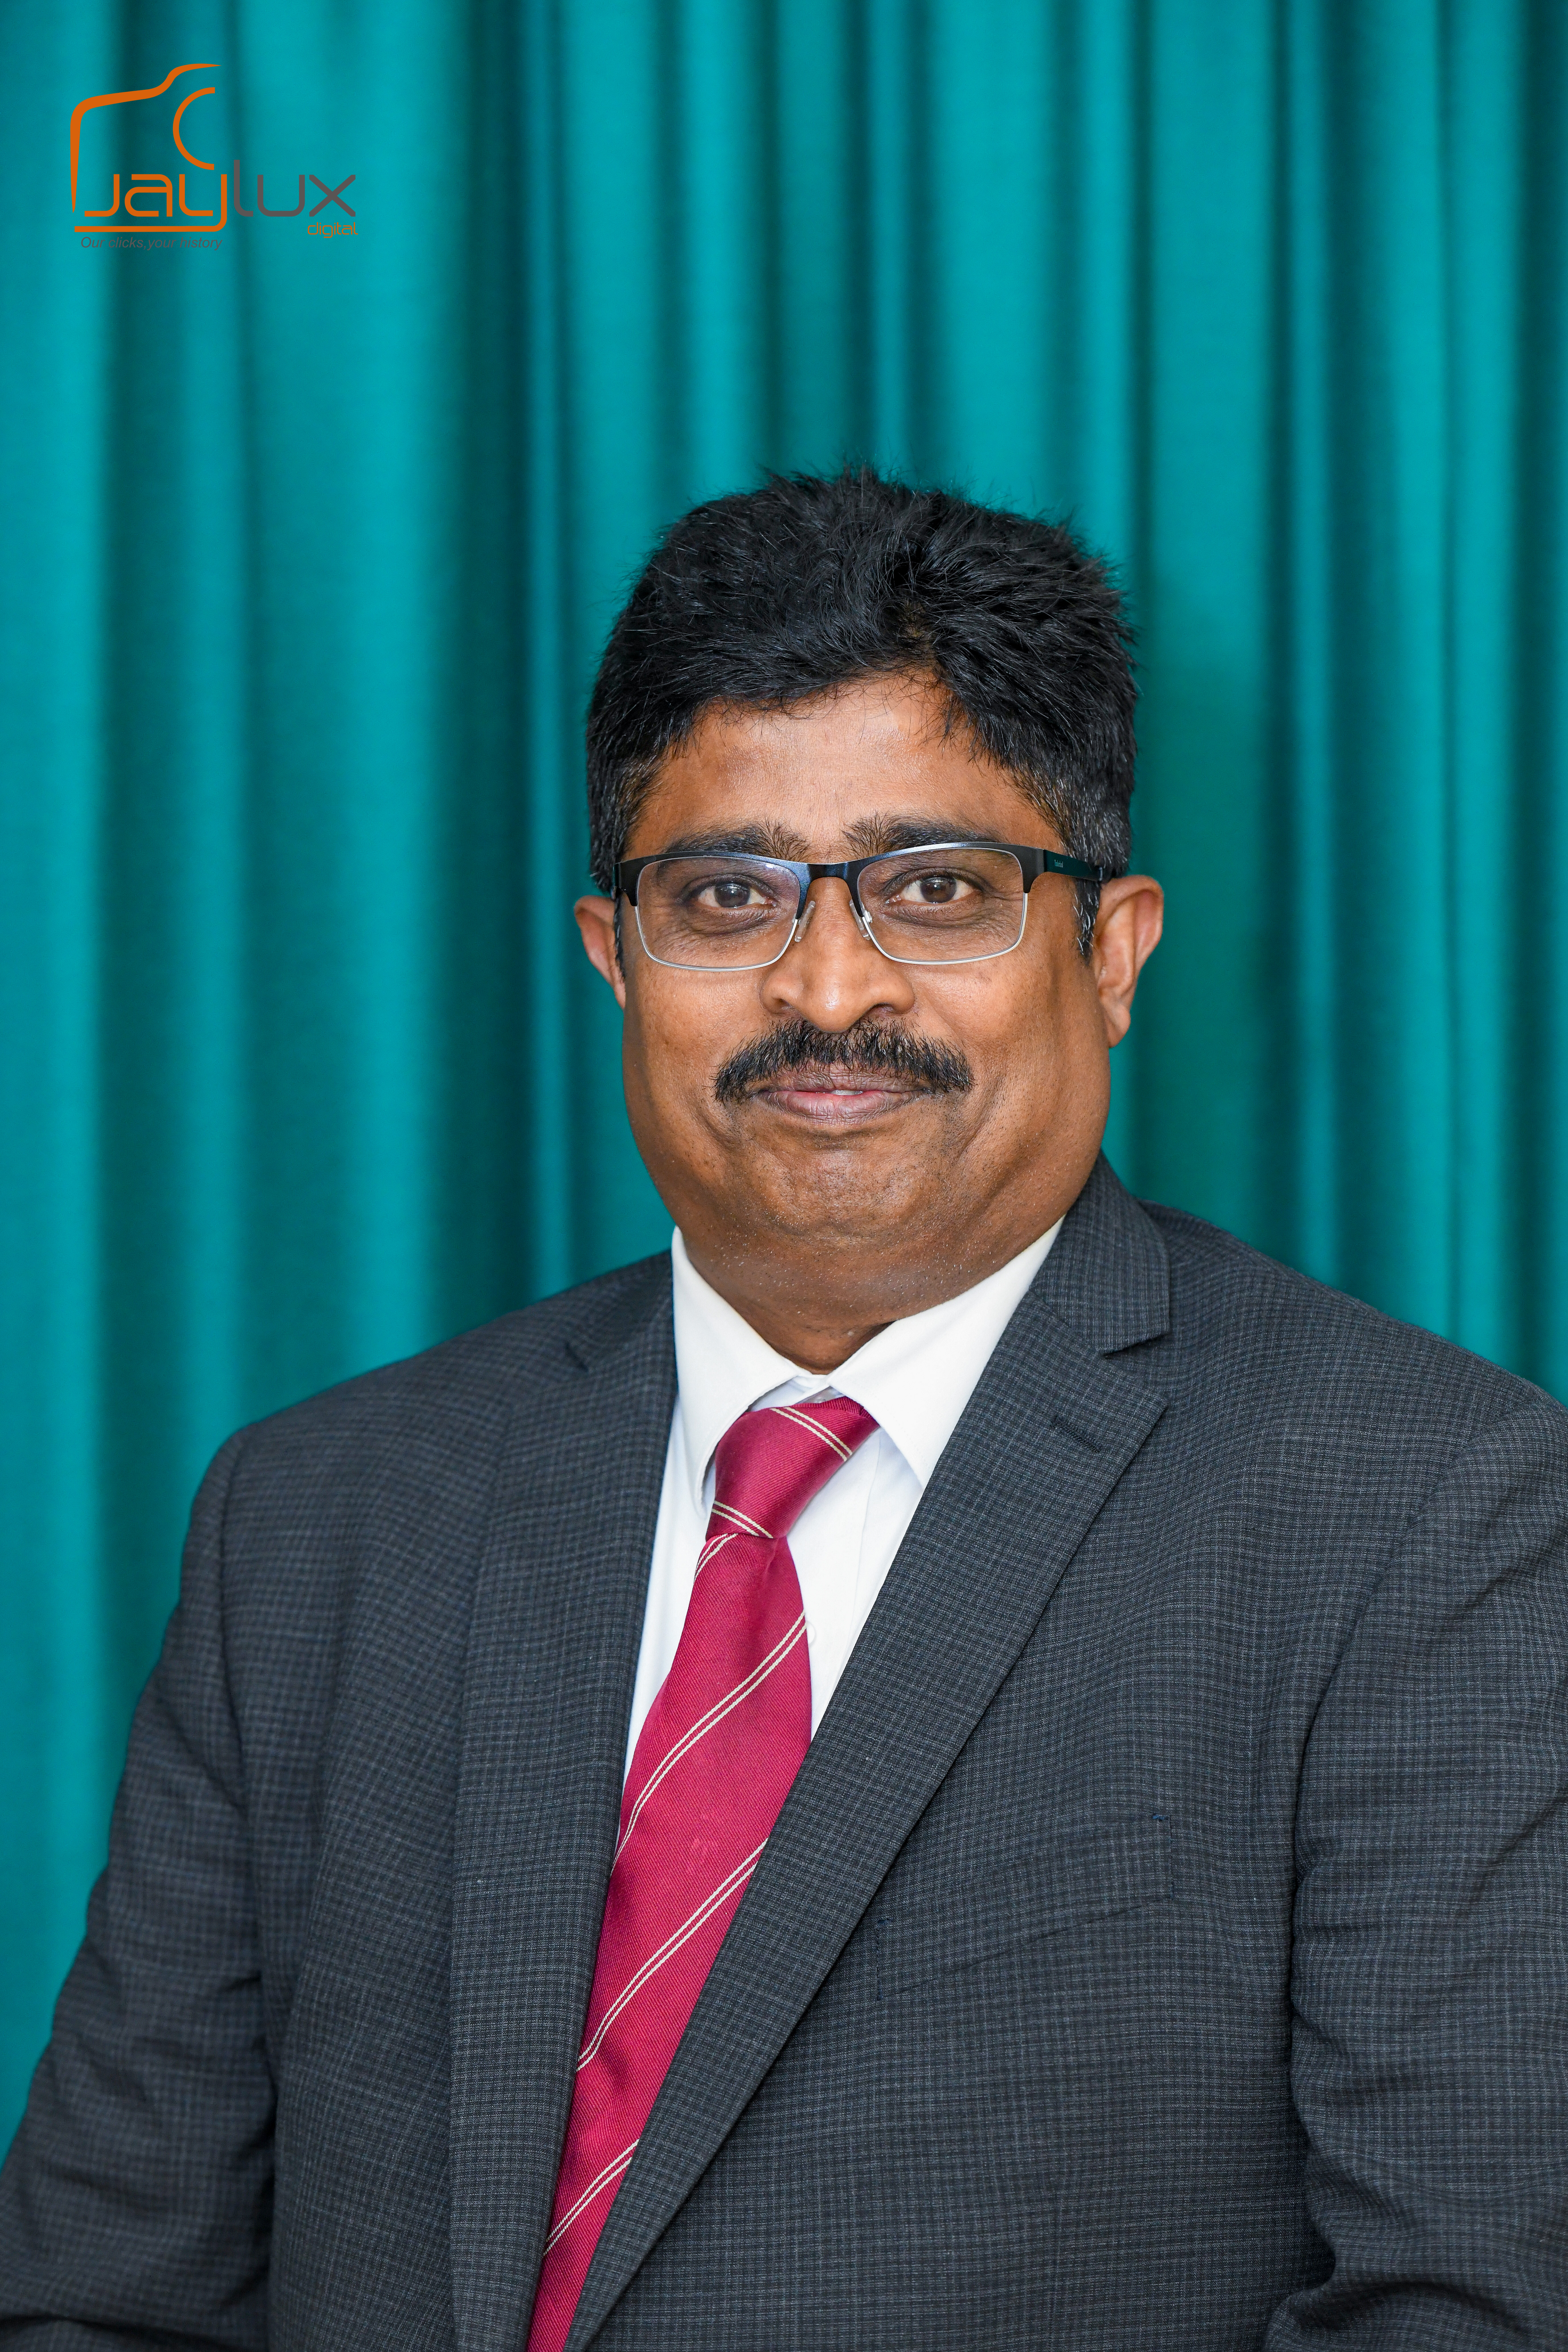 Treasurer -  Mr Balamurali